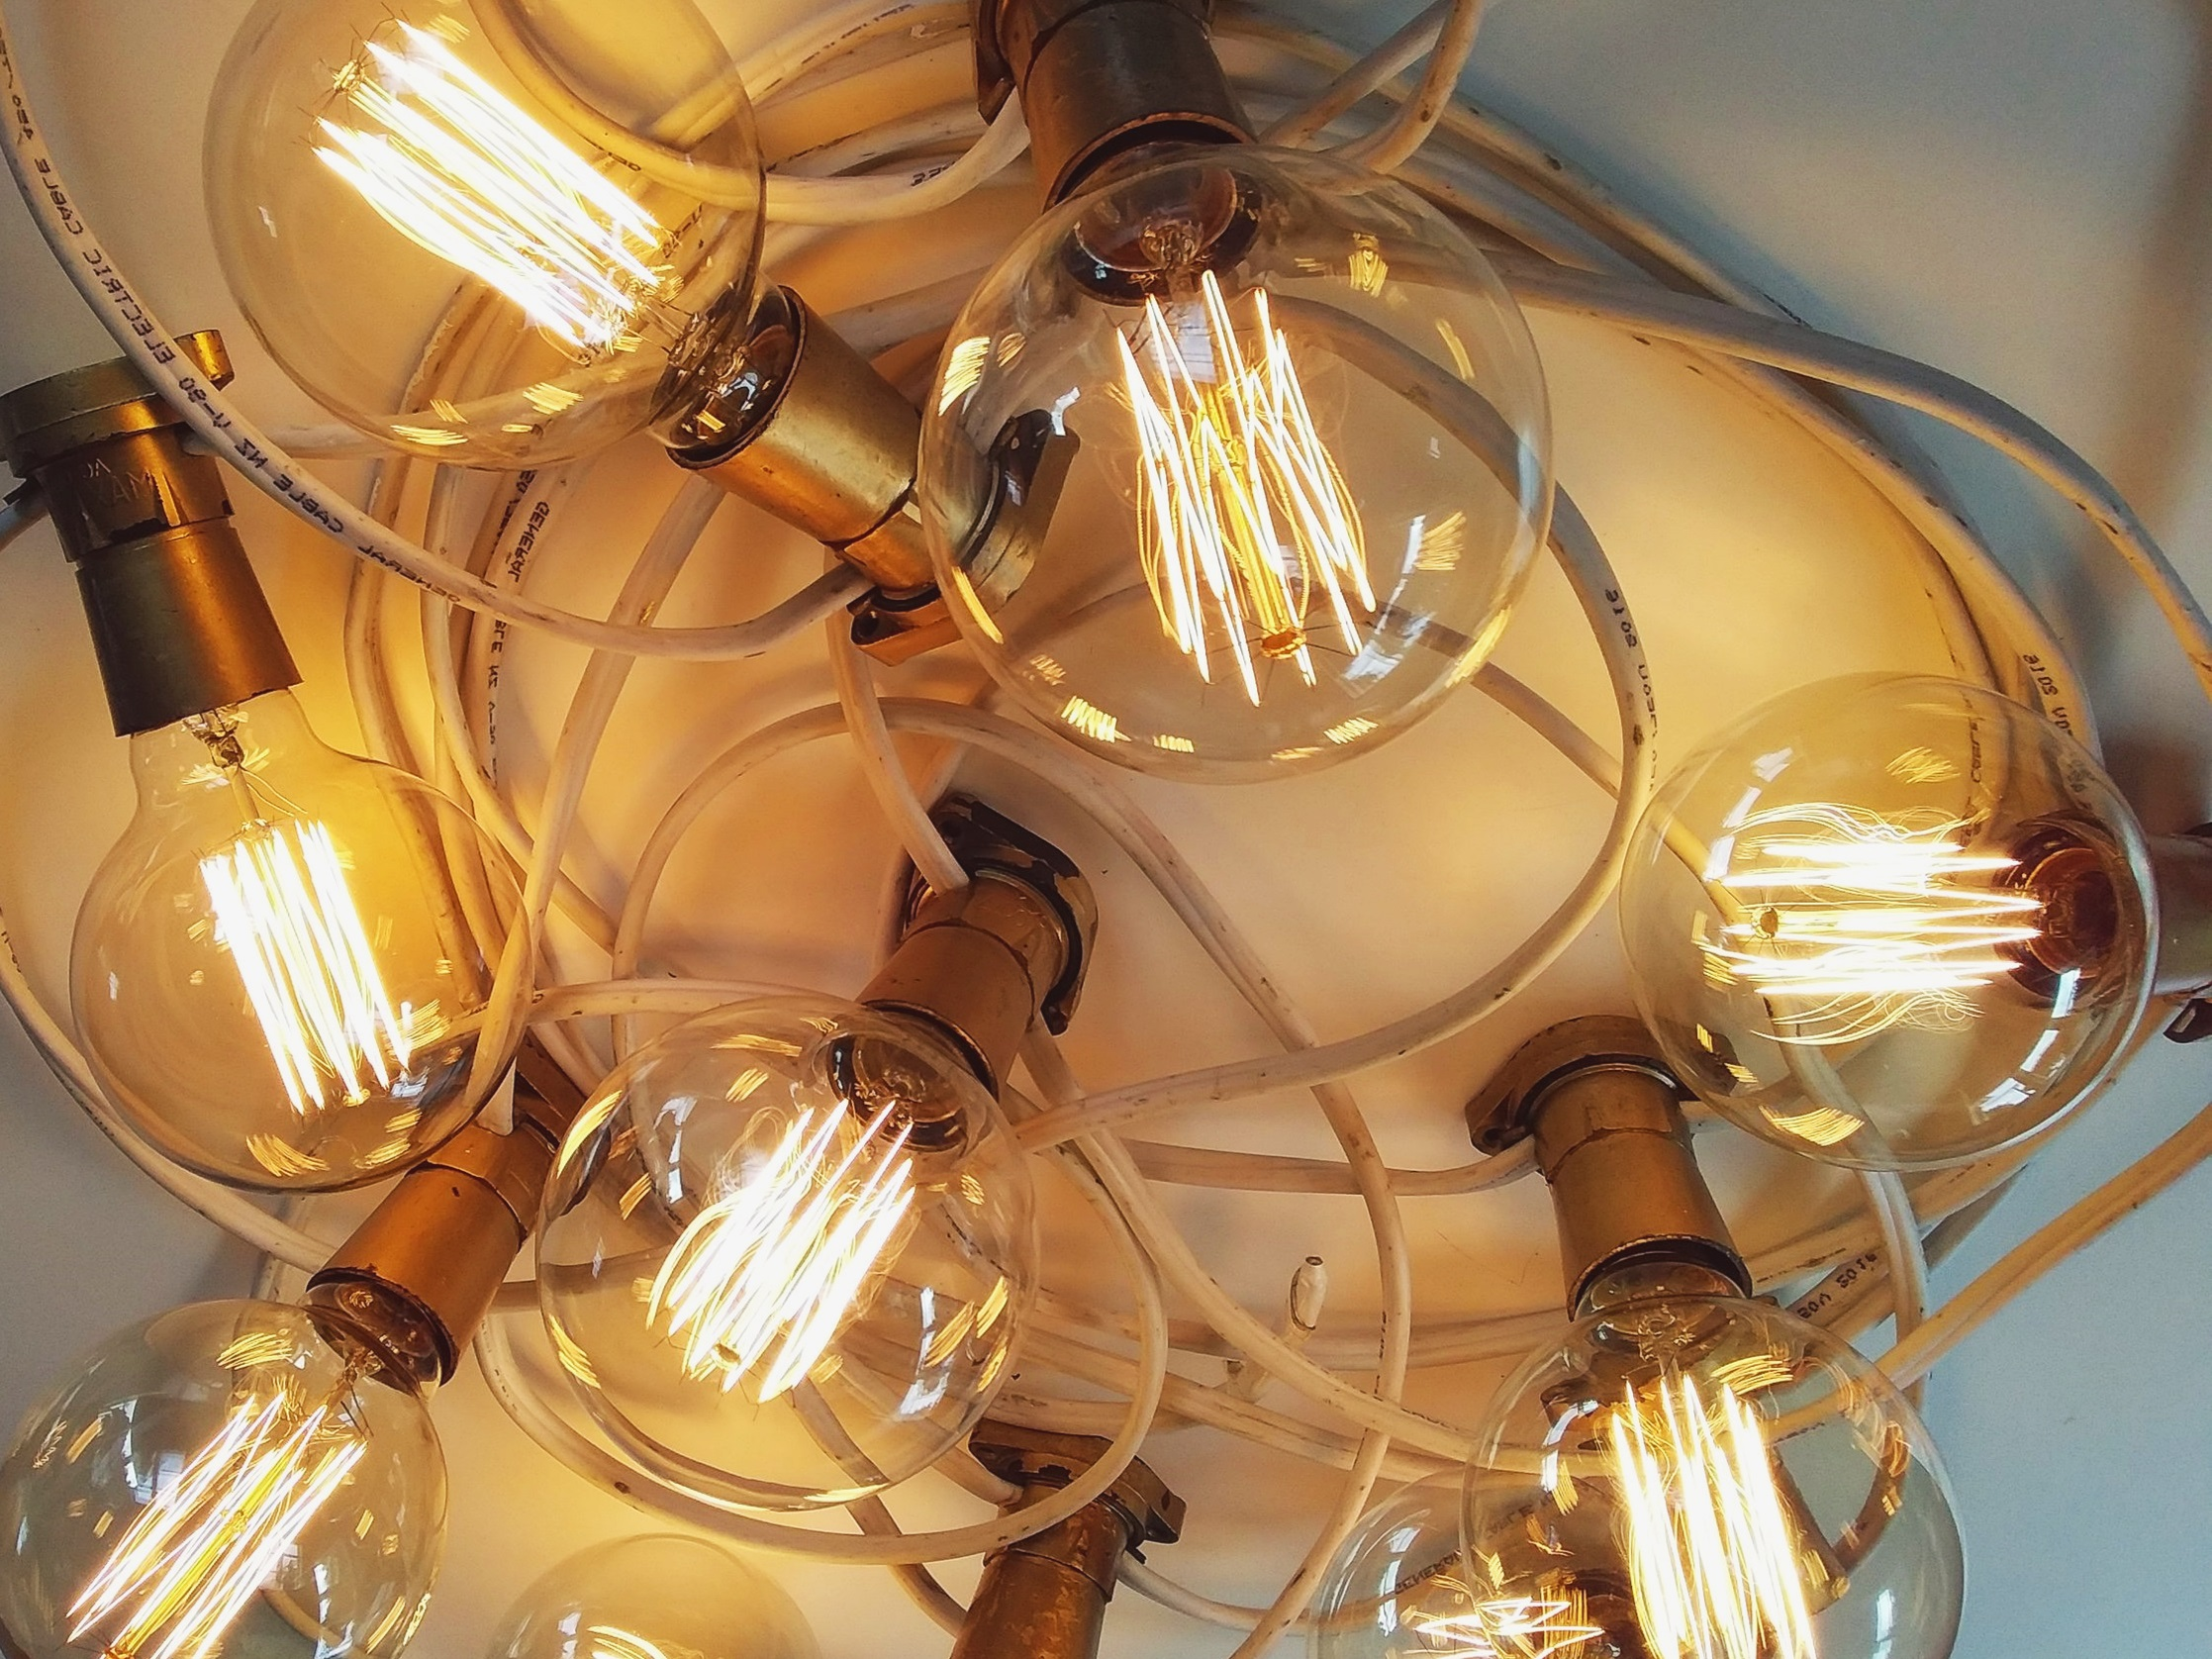 with globe shaped filament bulbs - 10m $75.00, 15m $90.00